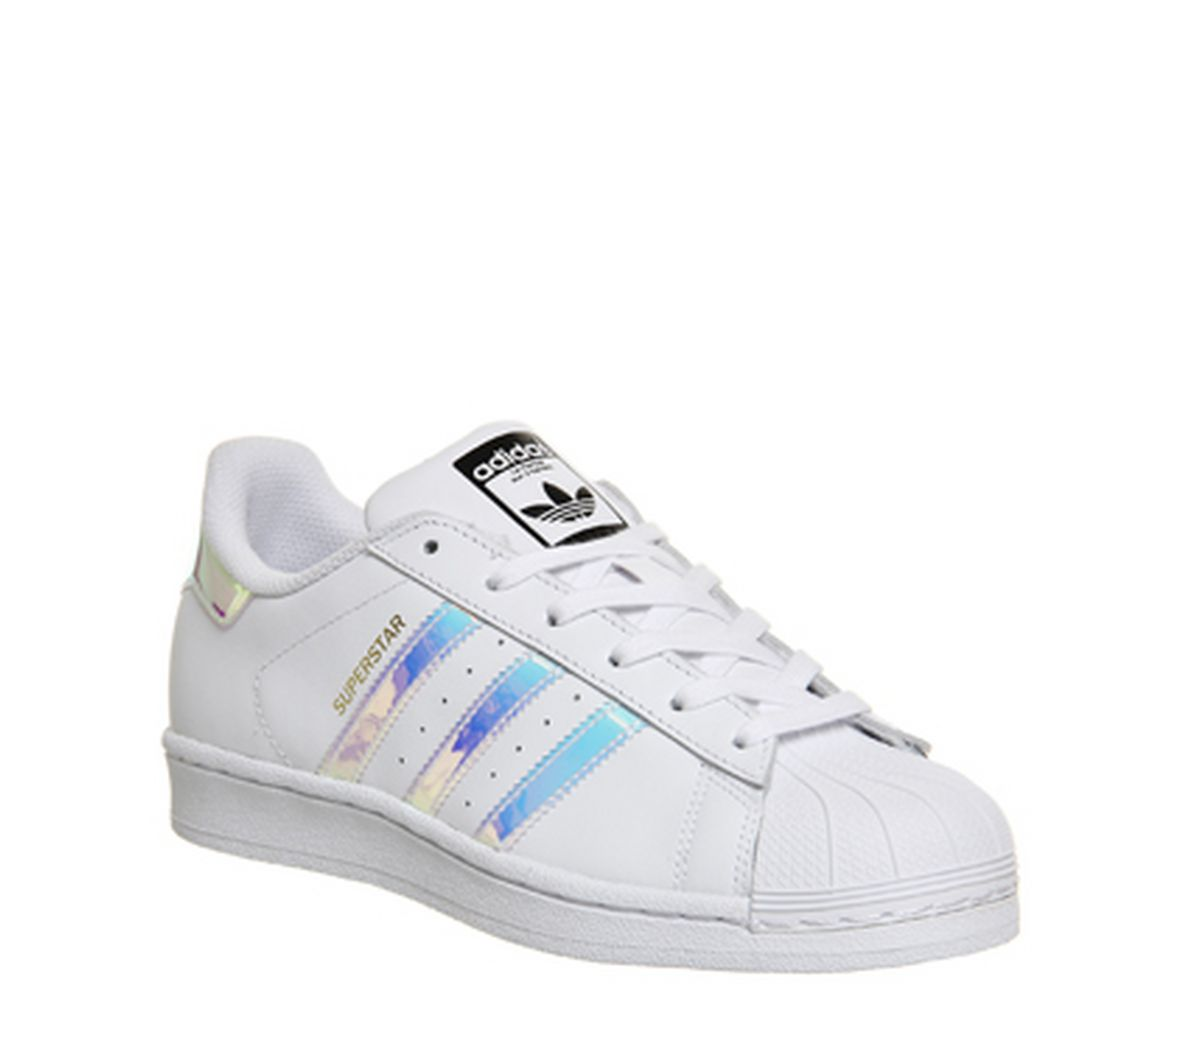 official photos 5ffaa dea96 adidas Superstar White Metallic Silver White - Hers trainers